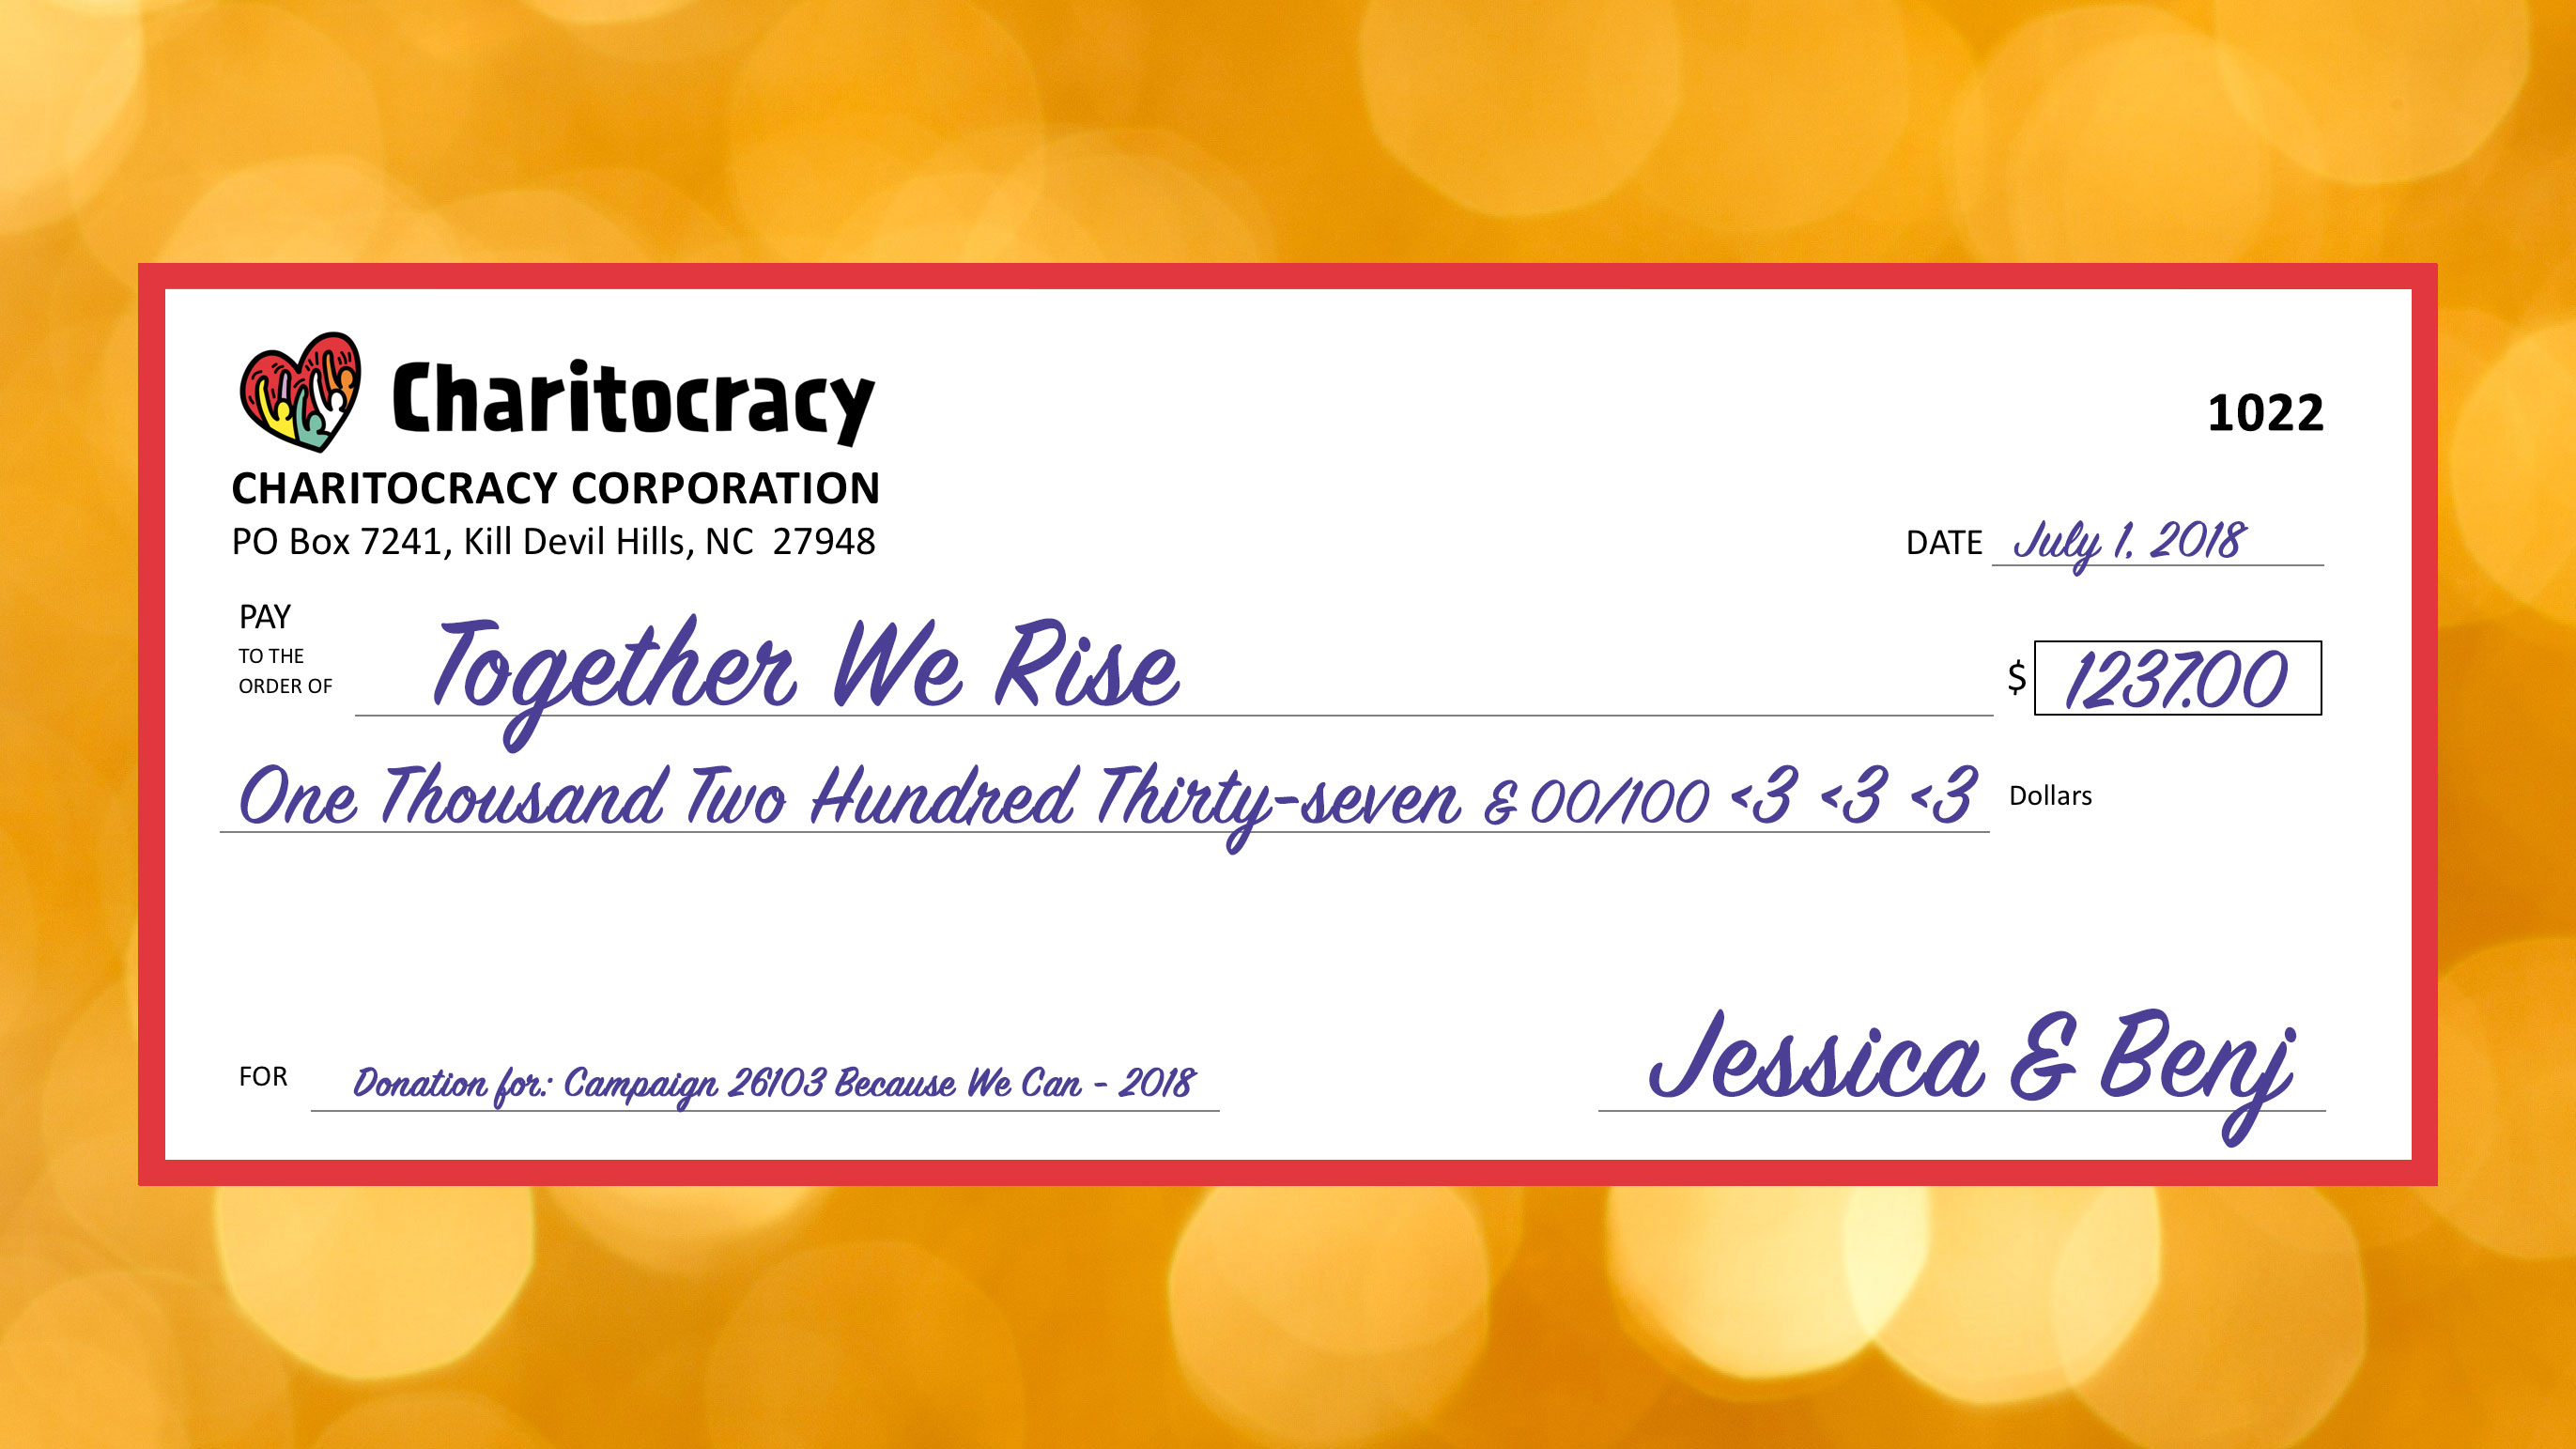 Charitocracy's 22nd check to June winner Together We Rise for $1237